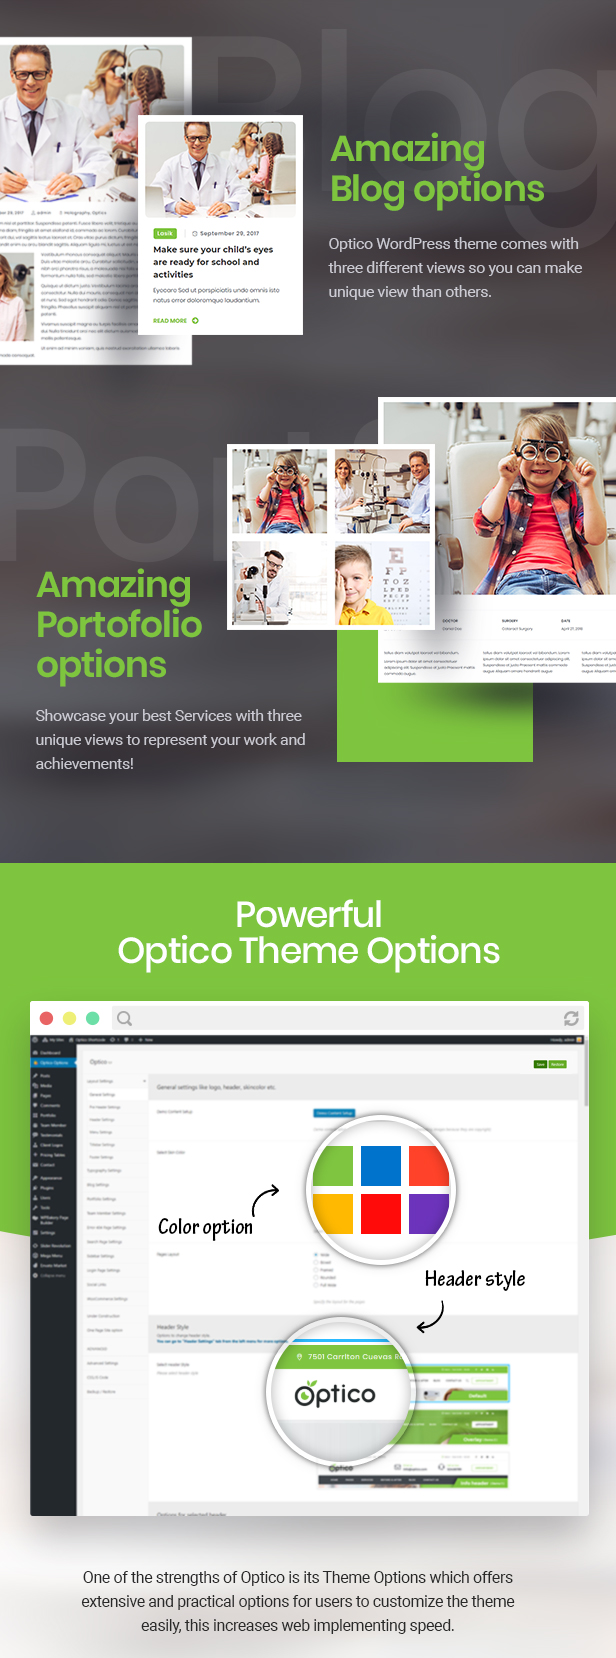 Optico WordPress Theme